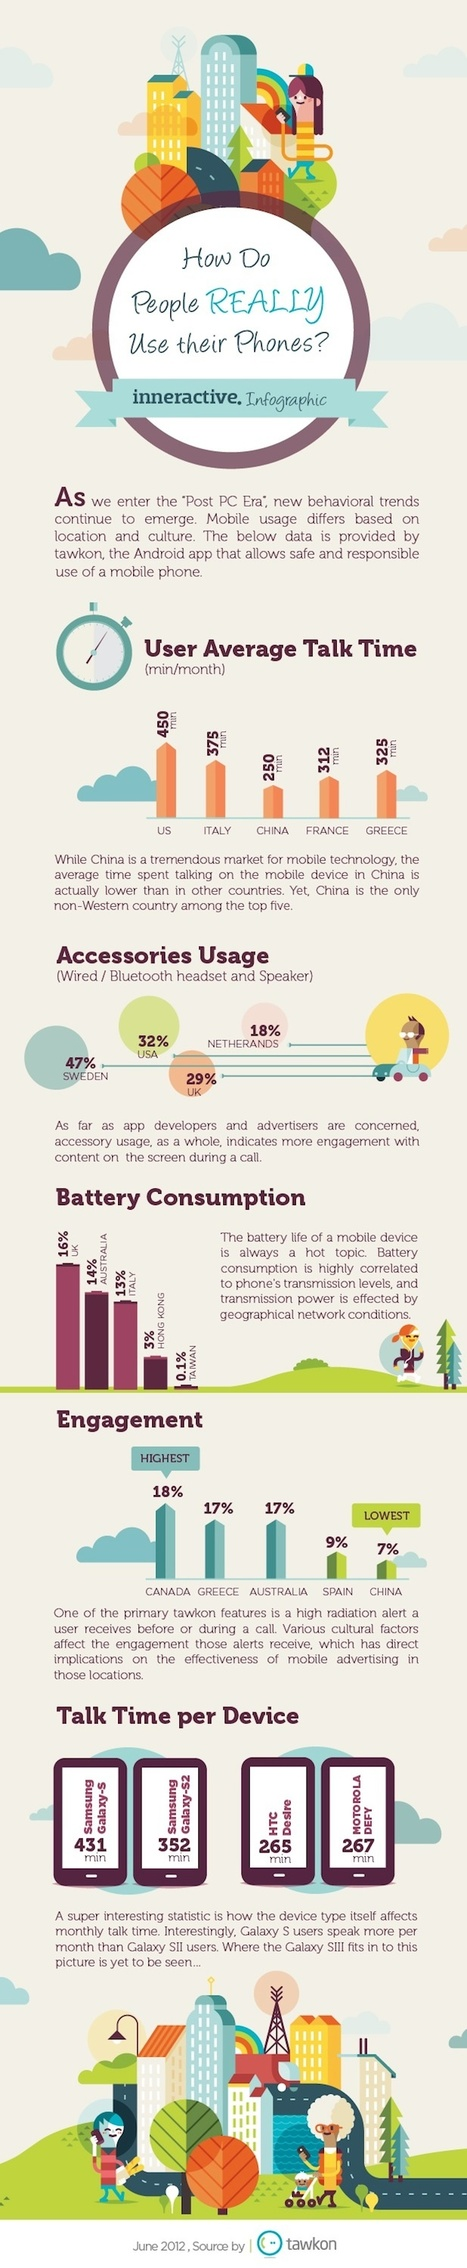 How Android Phone Owners Use Their Devices [INFOGRAPHIC] | Android Information and Apps | Scoop.it